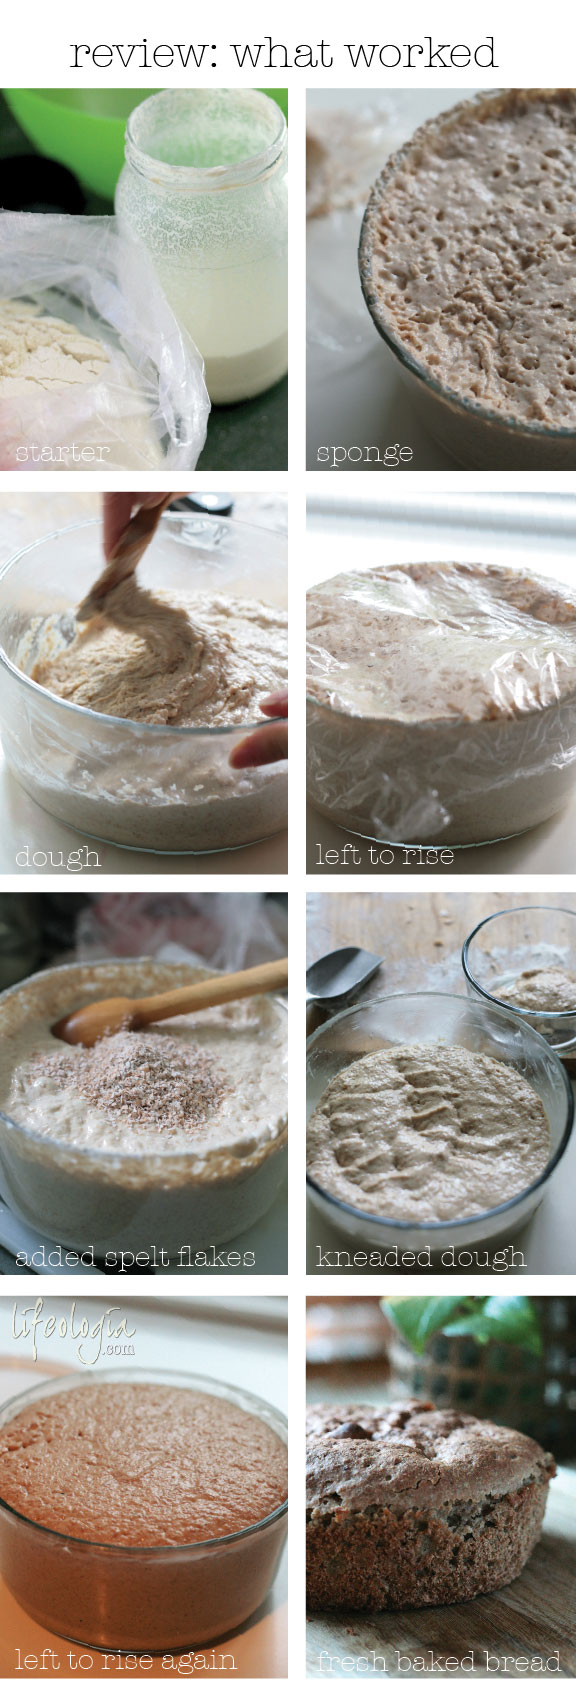 sourdough bread4 steps